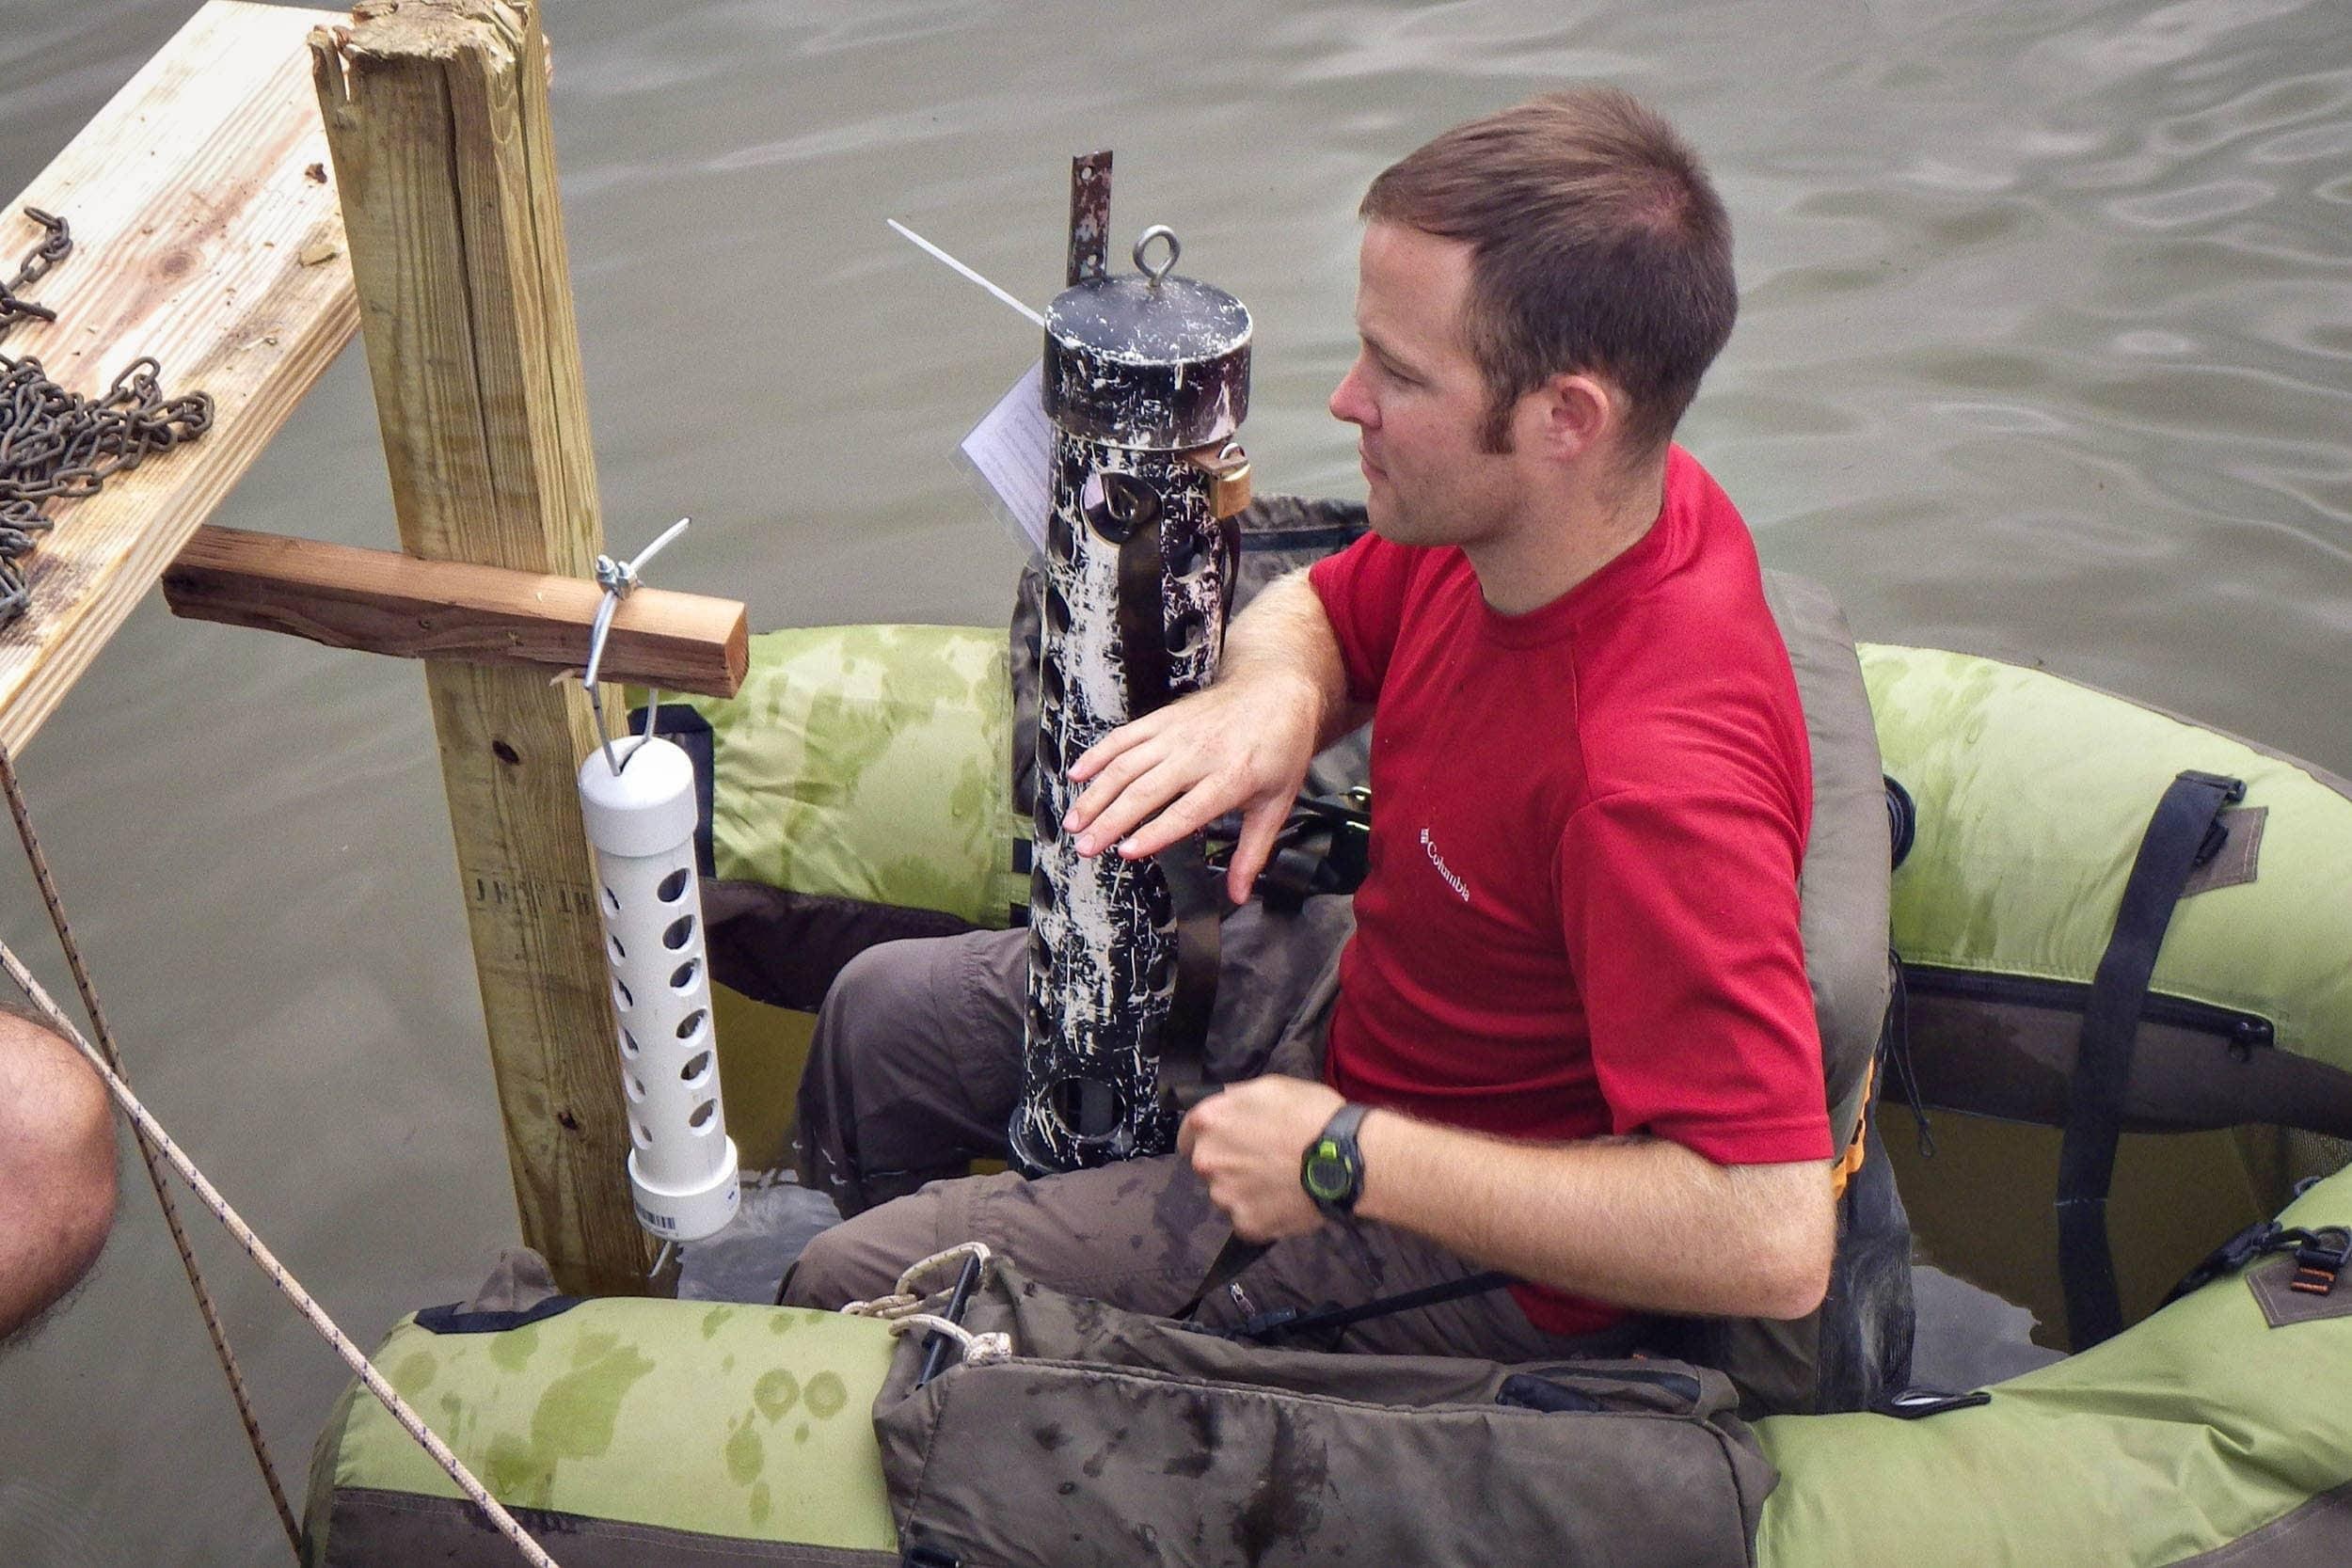 Stephen Curtis deploys water quality monitoring sondes